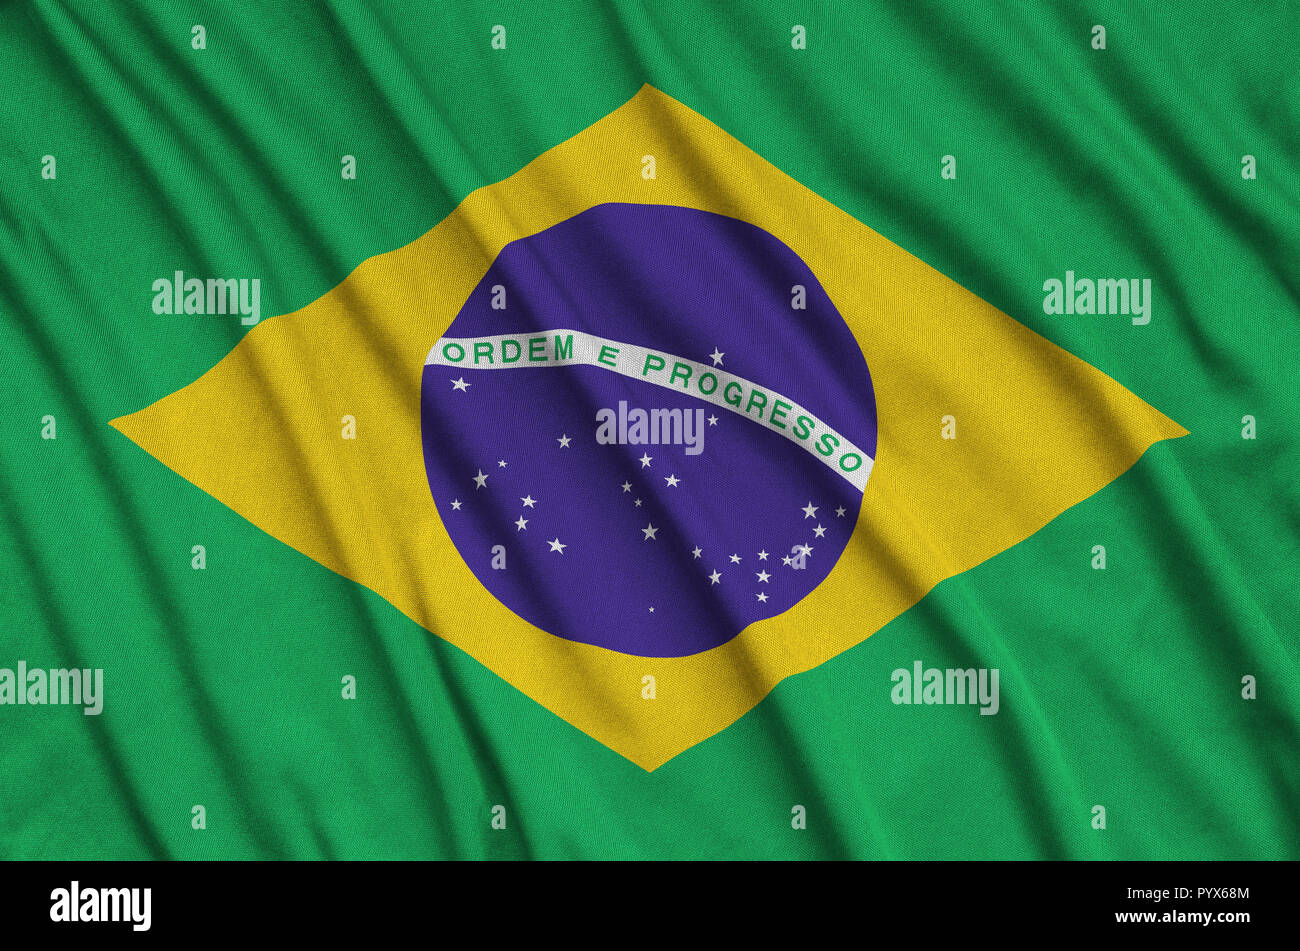 Brazil flag  is depicted on a sports cloth fabric with many folds. Sport team waving banner - Stock Image